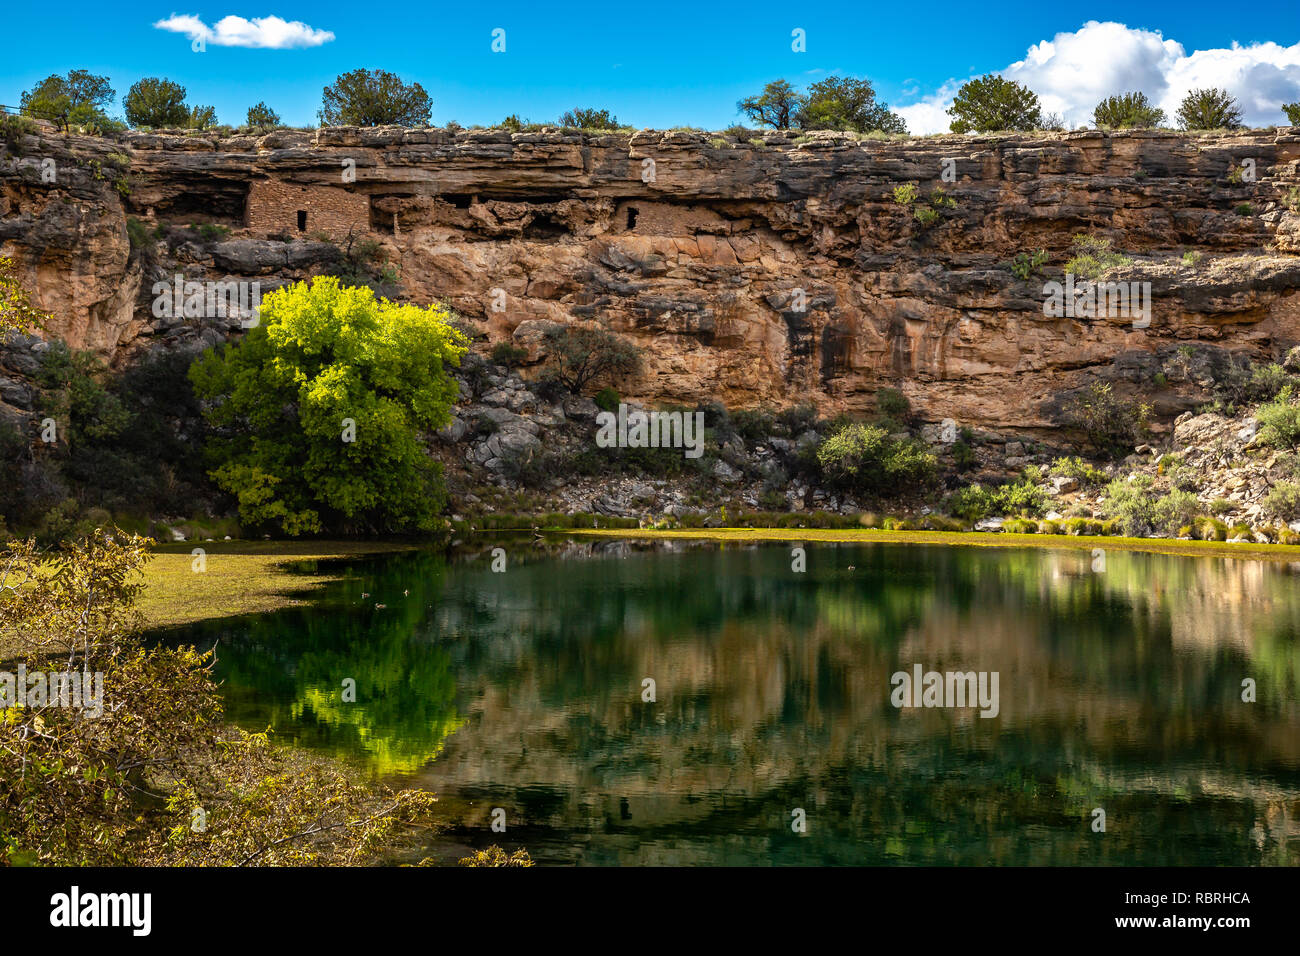 Ancient ruins and surroundings reflect on the quiet water of Montezuma Well. Part of Montezuma Castle National Monument. Stock Photo